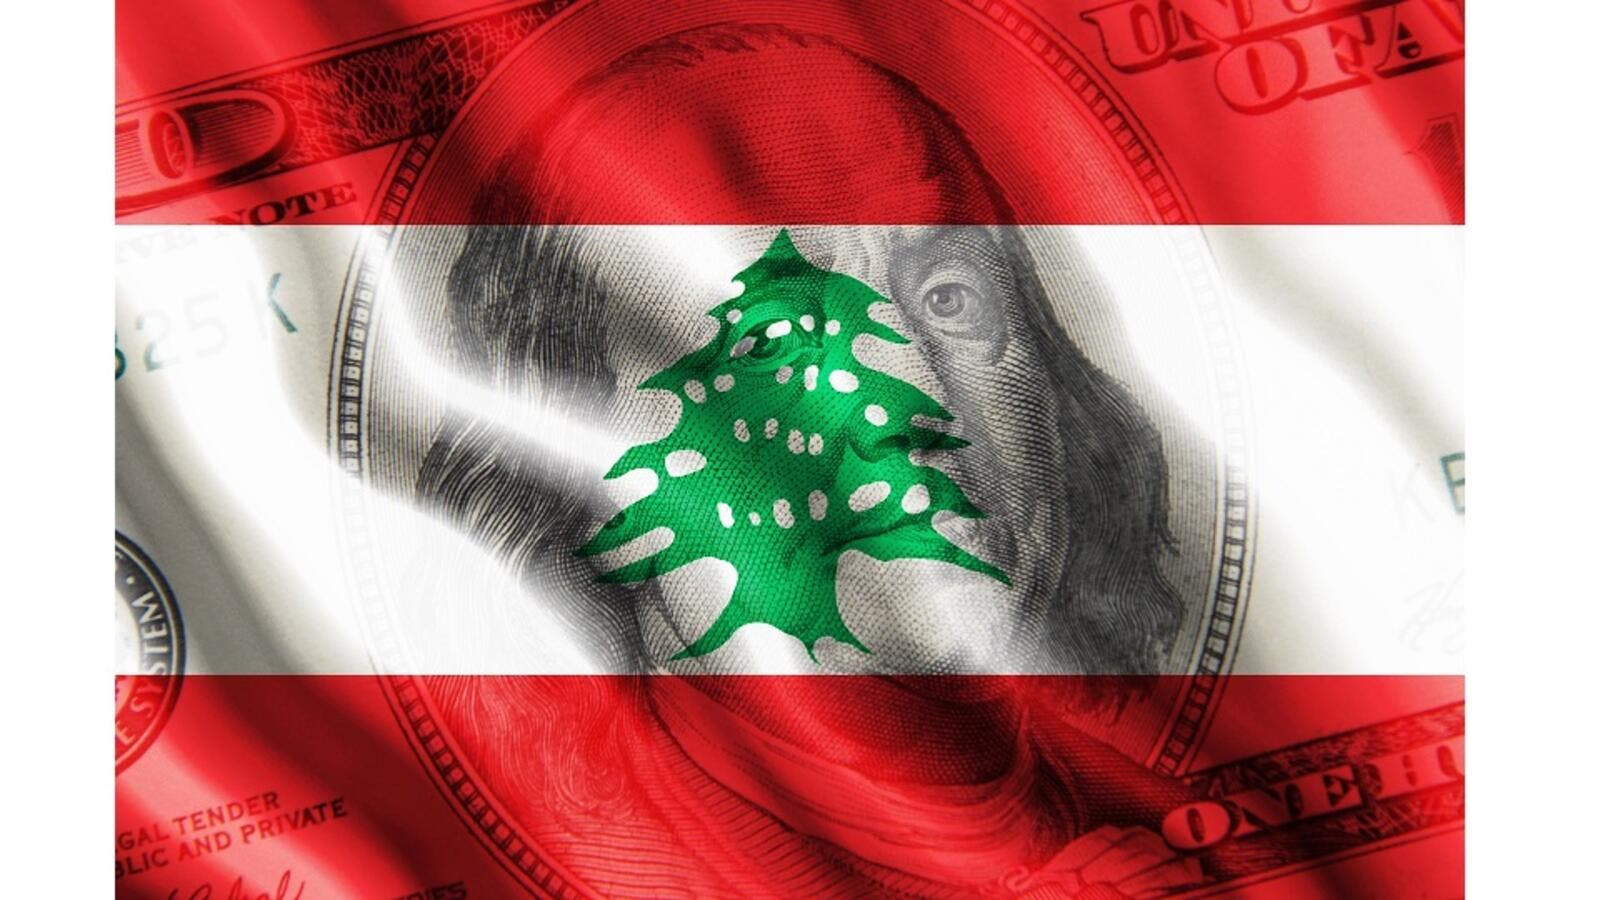 The World Bank revised its GDP growth estimate for Lebanon to just 0.2 percent from 1 percent in 2018. (Shuttertock)